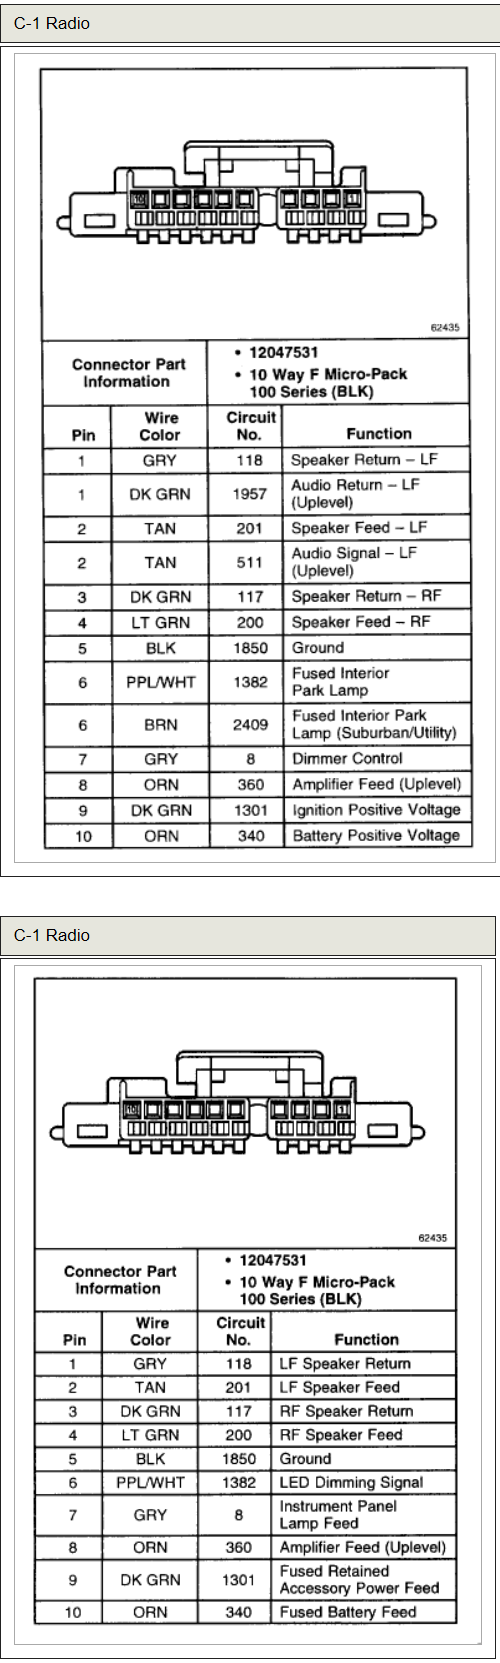 Chevrolet Tahoe LS 2000 stereo wiring connector 2 chevrolet car radio stereo audio wiring diagram autoradio 2004 chevy tahoe radio wiring diagram at crackthecode.co